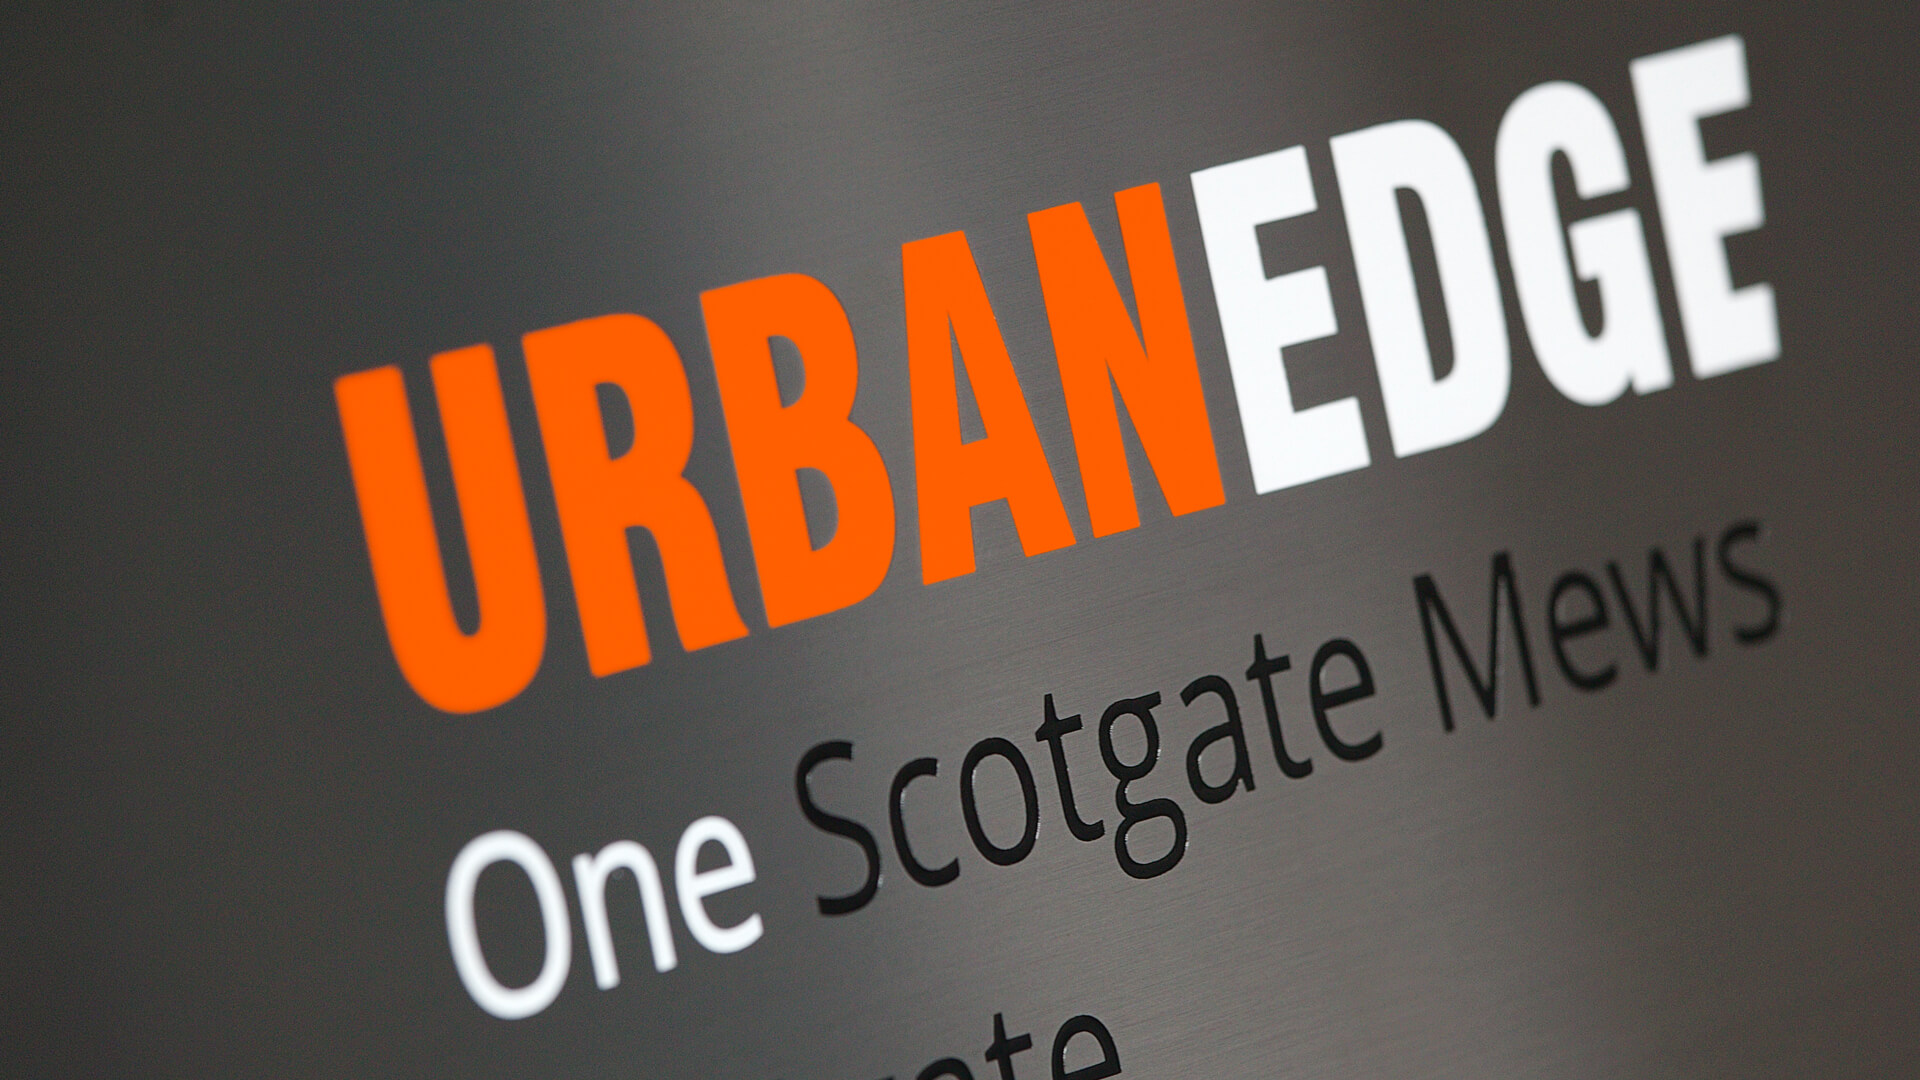 Urban Edge Architecture Sign